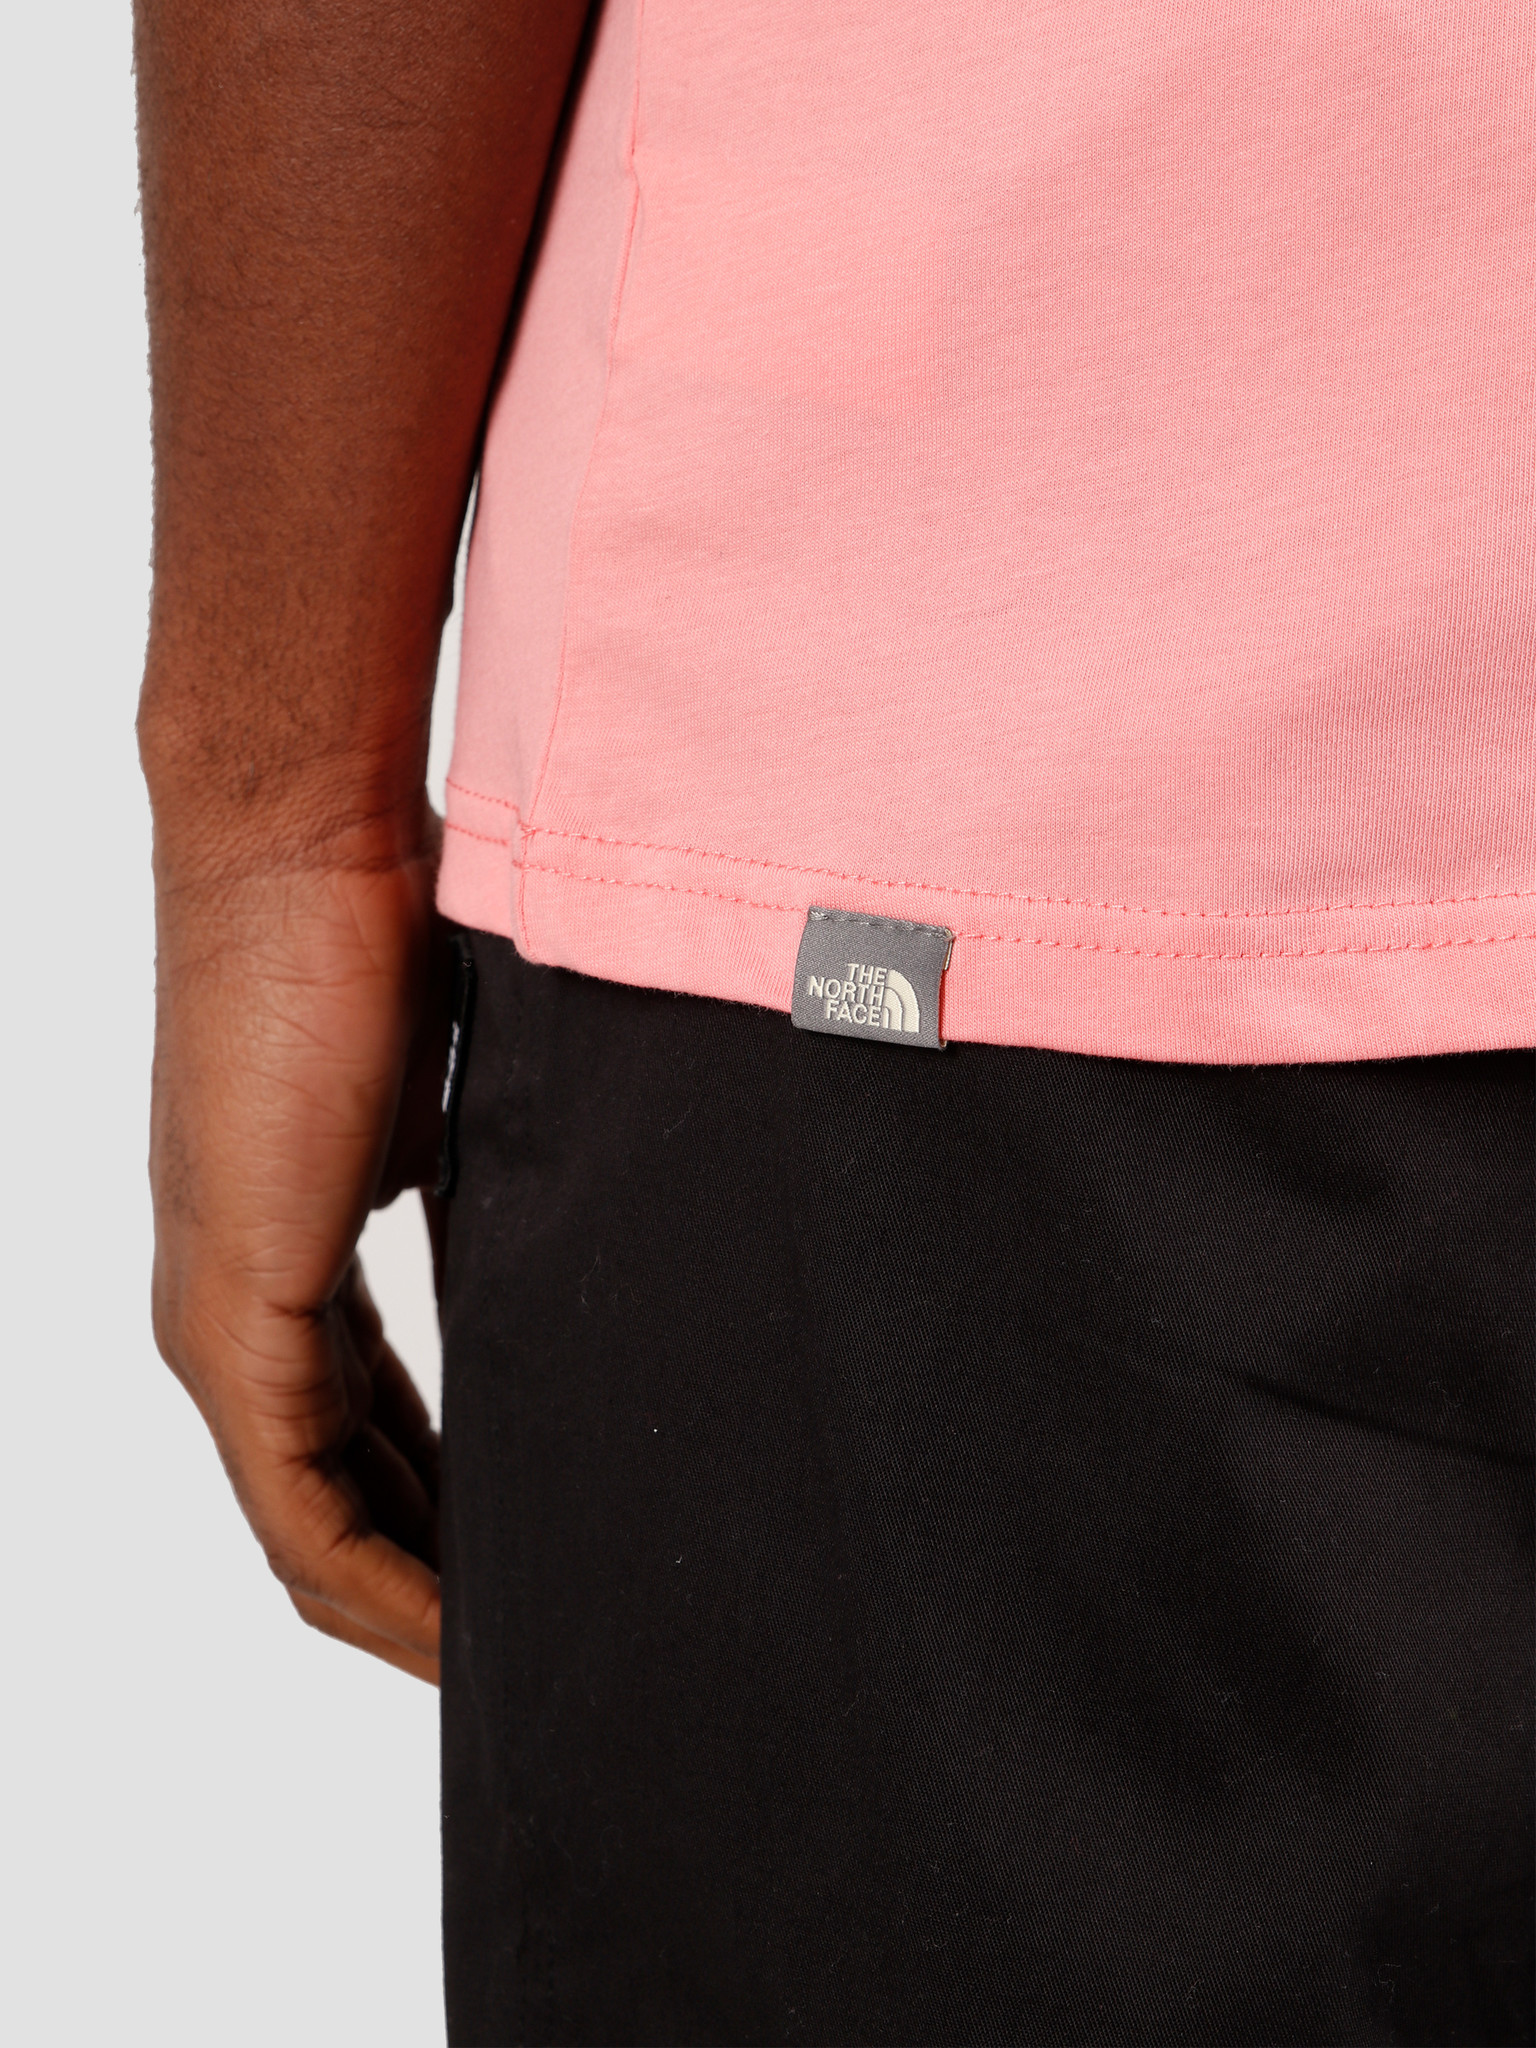 The North Face The North Face Short Sleeve Simple Dome Tee Mauveglow NF0A2TX5HK41